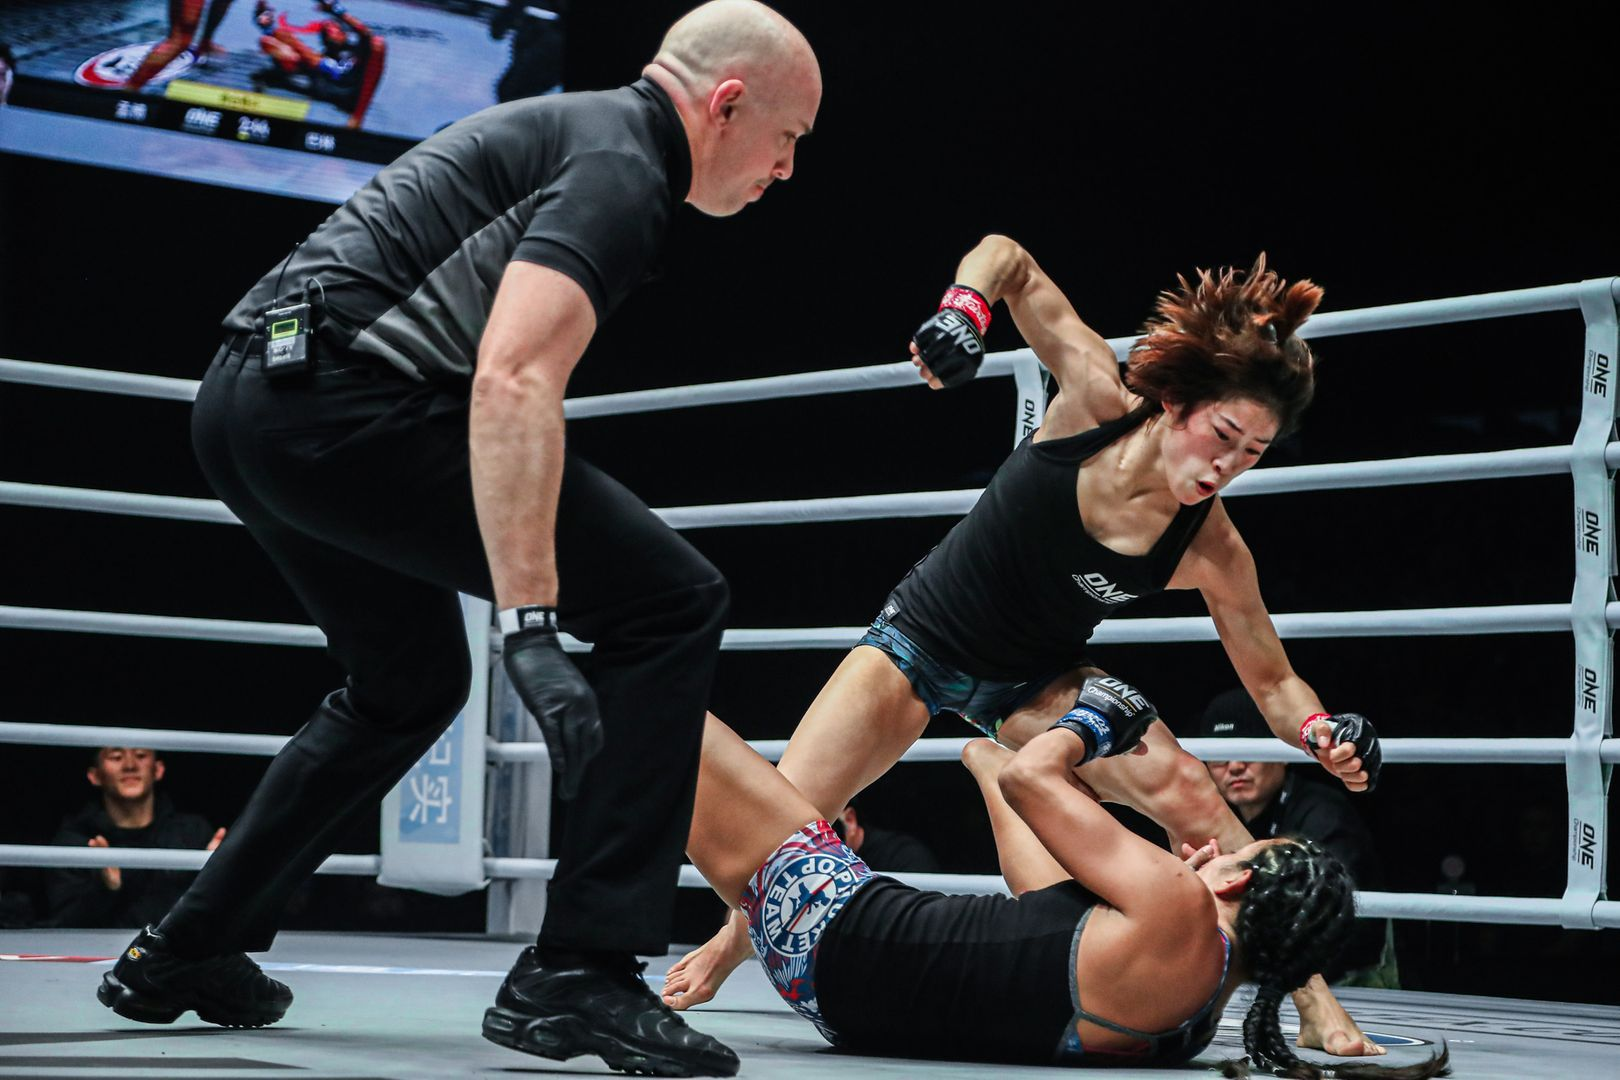 Chinese mixed martial artist throws the final blow at Laura Balin